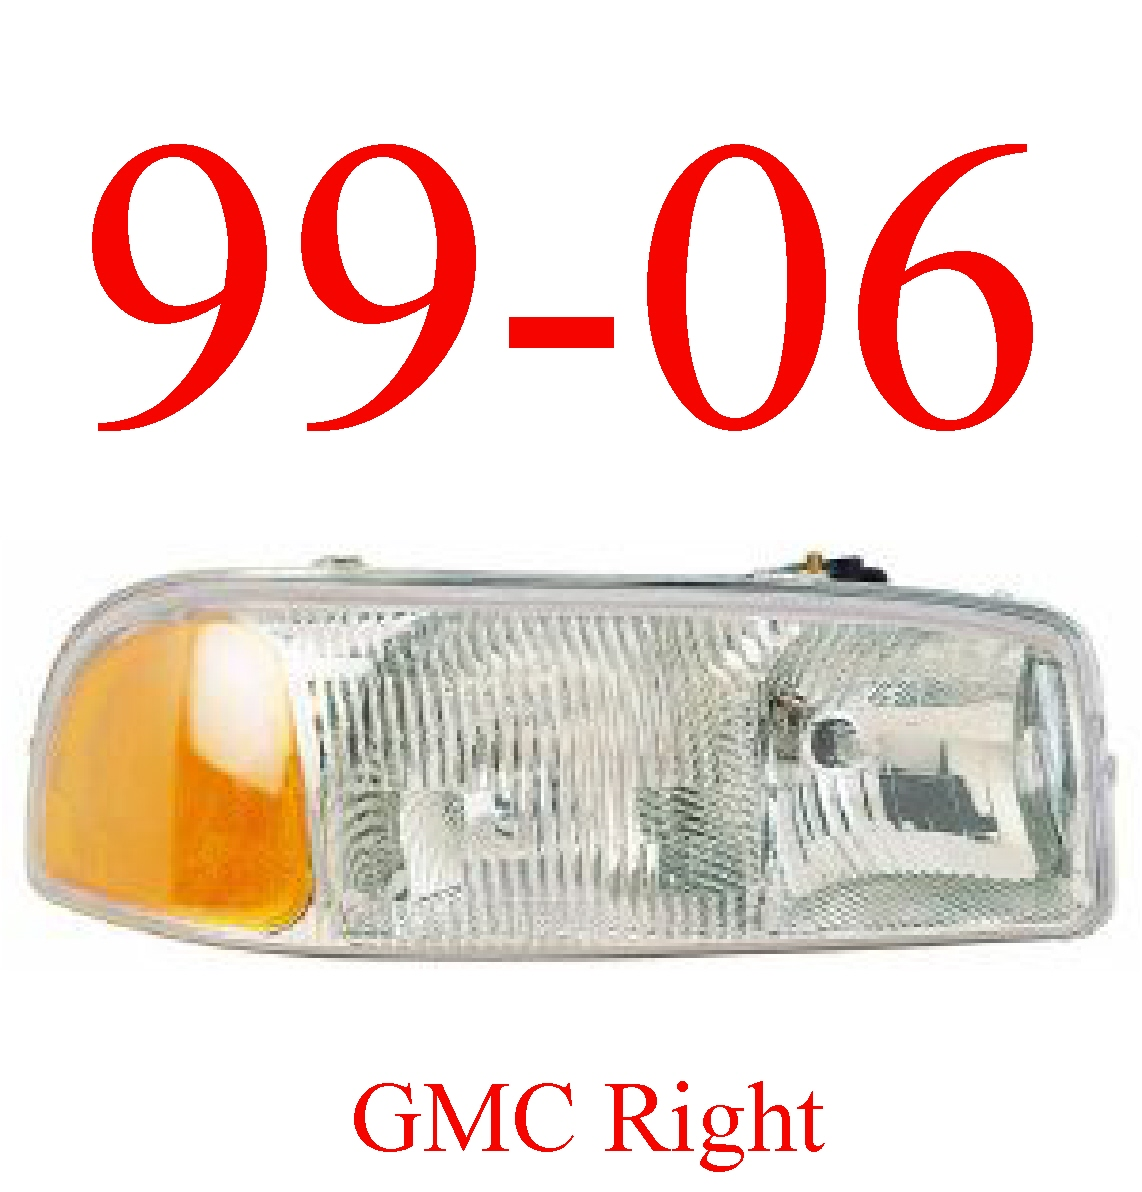 99-06 GMC Truck Right Head Light Assembly